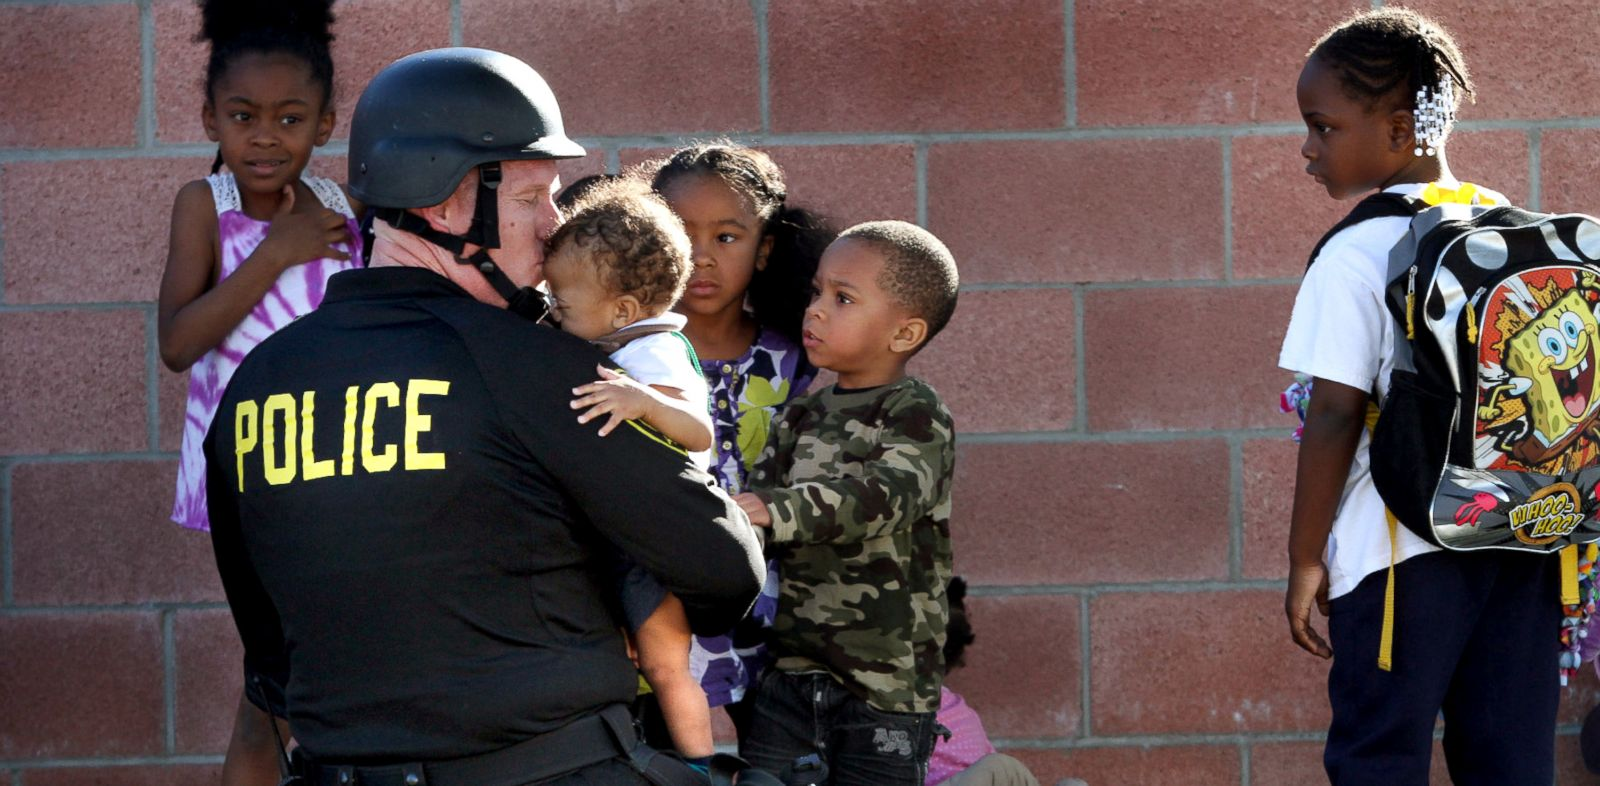 PHOTO: Inglewood police officer Joey Zeller kisses the head of toddler he led to safety with a group of others from the neighborhood where two police officers were shot in what began as a domestic dispute that led to a hostage situation, Nov. 27, 2013.